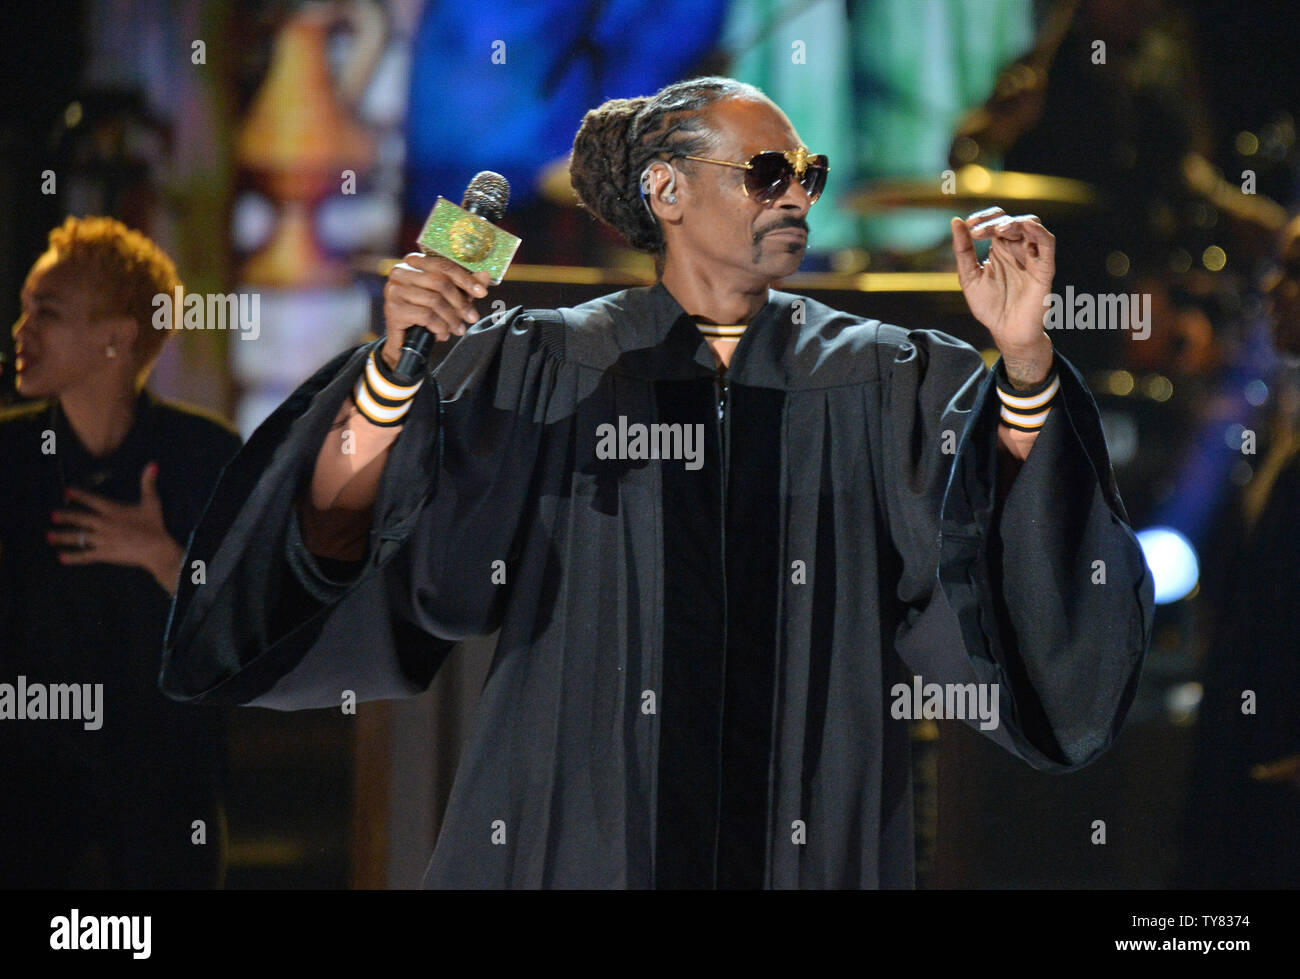 Snoop Dogg Performs Live In Stock Photos & Snoop Dogg